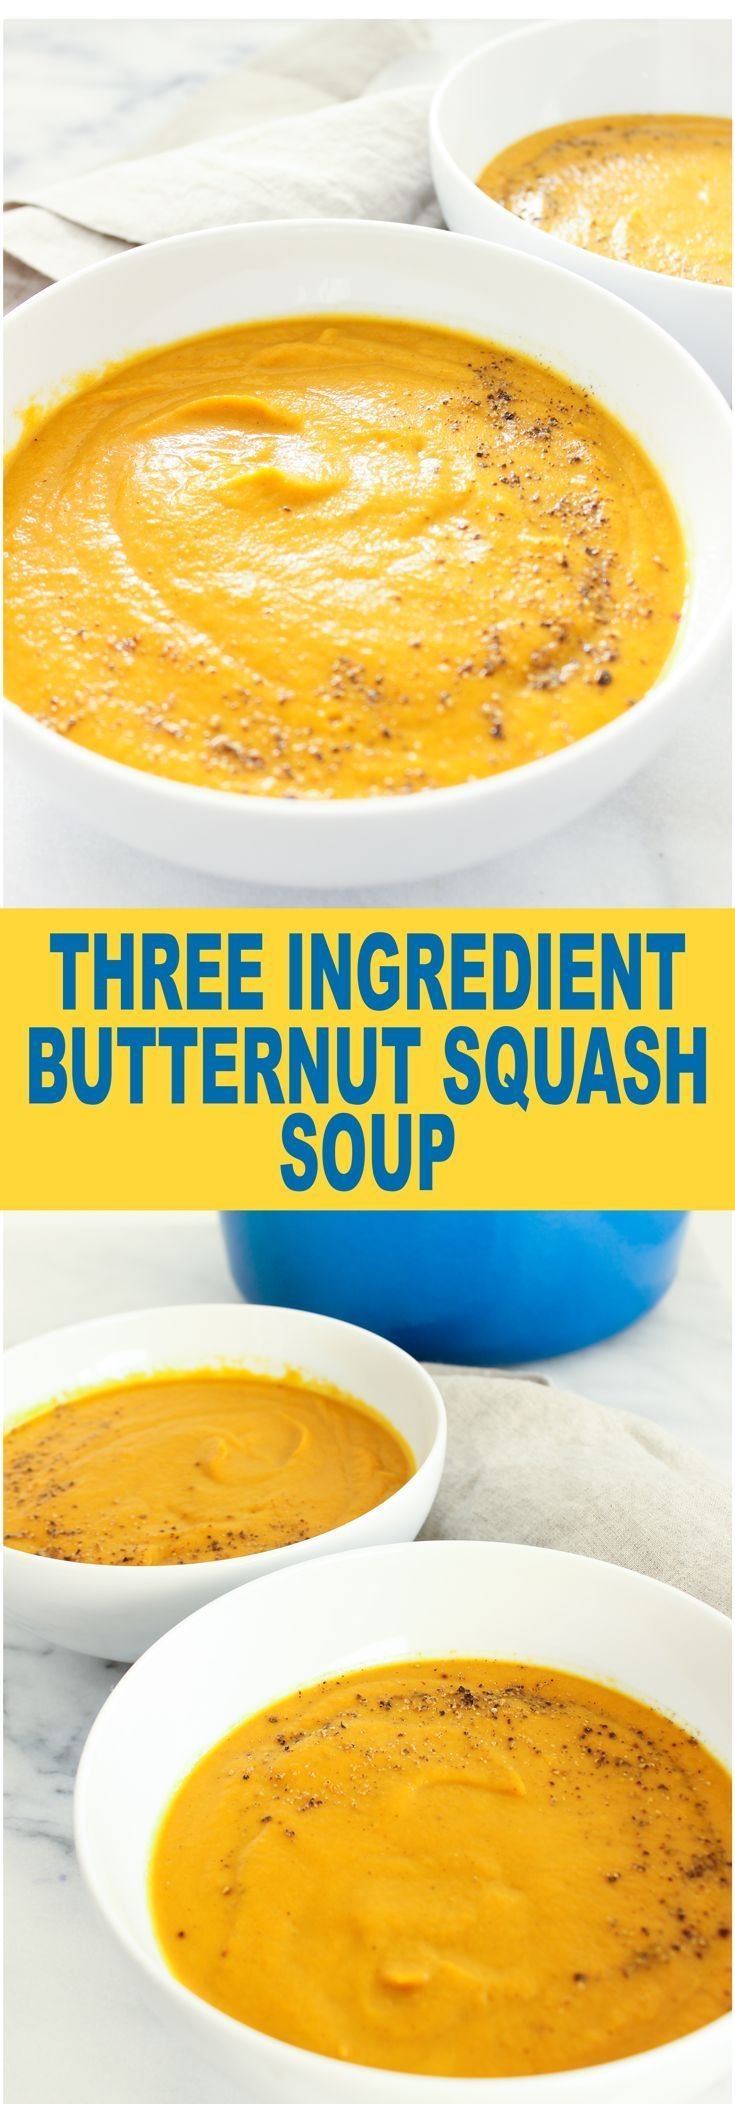 Super easy and healthy butternut squash soup. Dairy free yet so creamy! Only 3 ingredients!